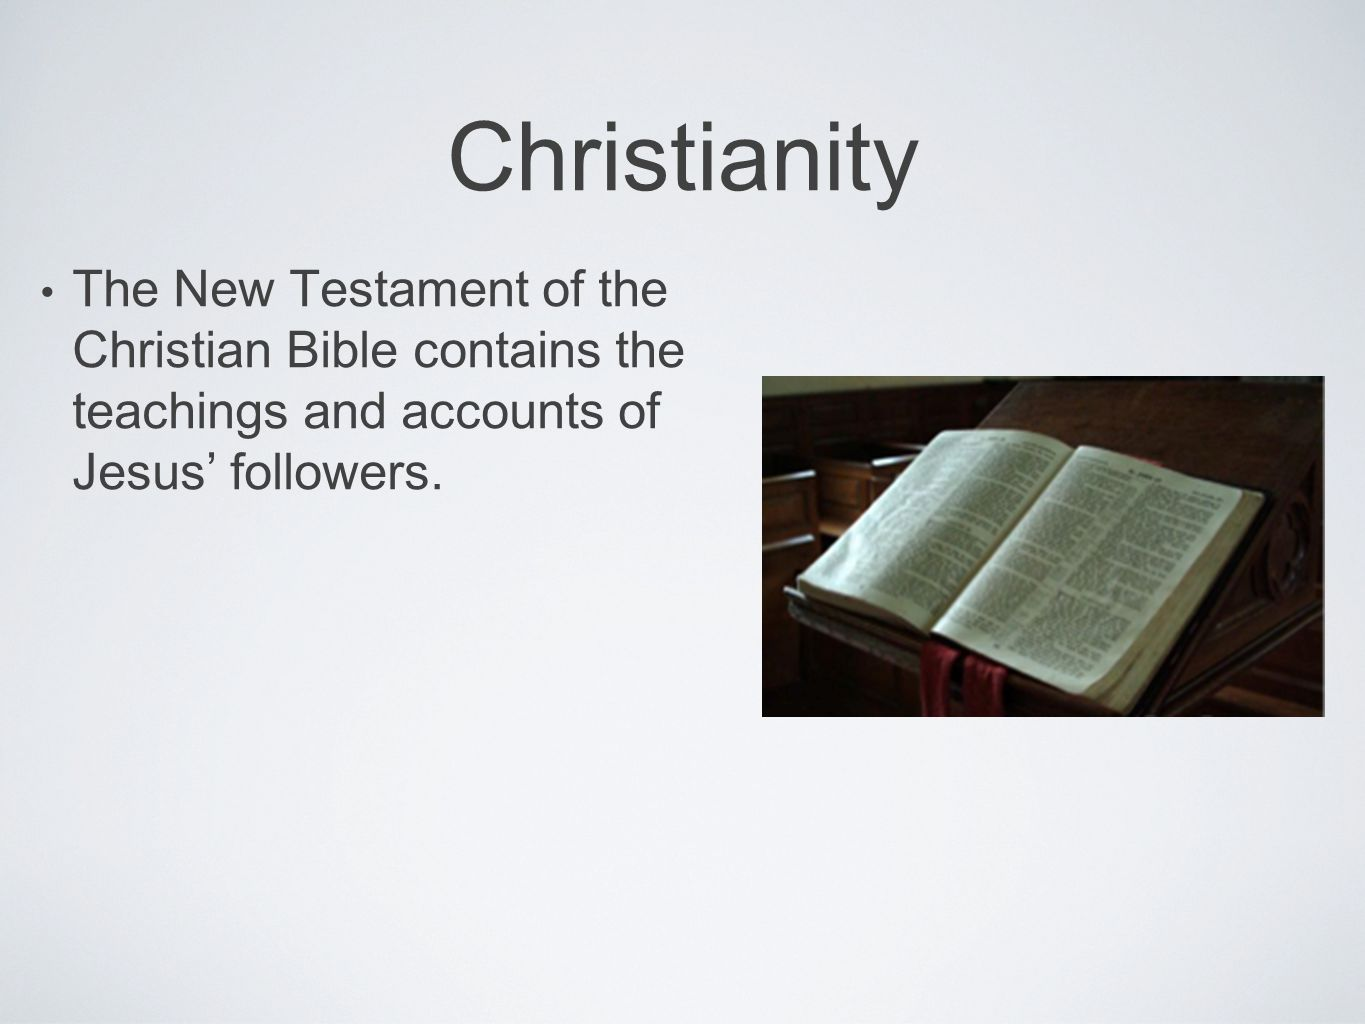 Christianity The New Testament of the Christian Bible contains the teachings and accounts of Jesus' followers.